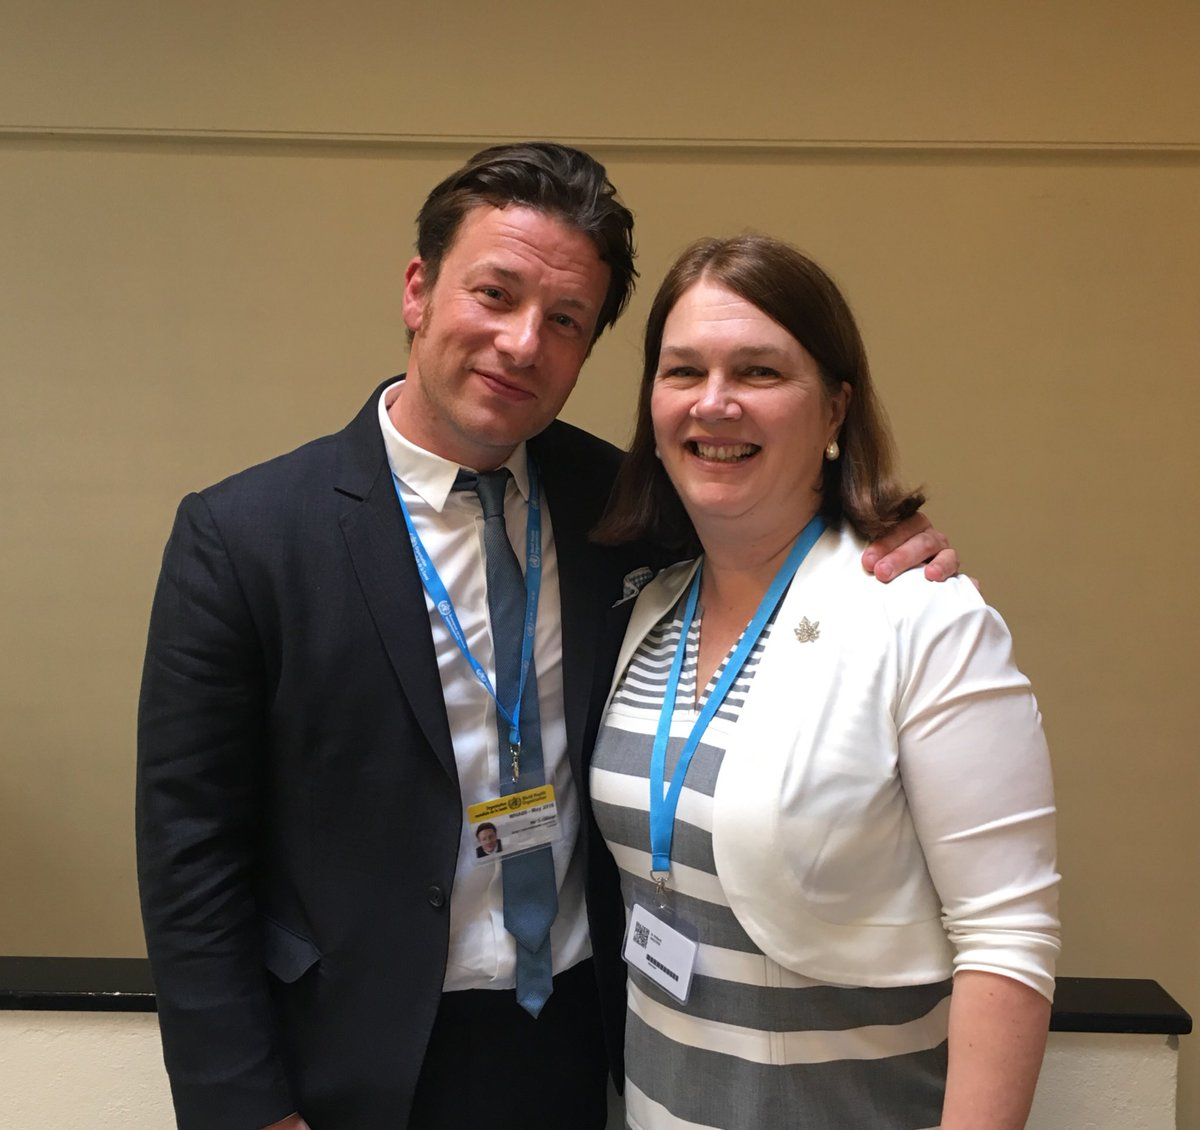 RT @janephilpott: Very inspired at #WHA69 by meeting with @jamieoliver on his leadership on healthy eating & a #FoodRevolution. https://t.c…